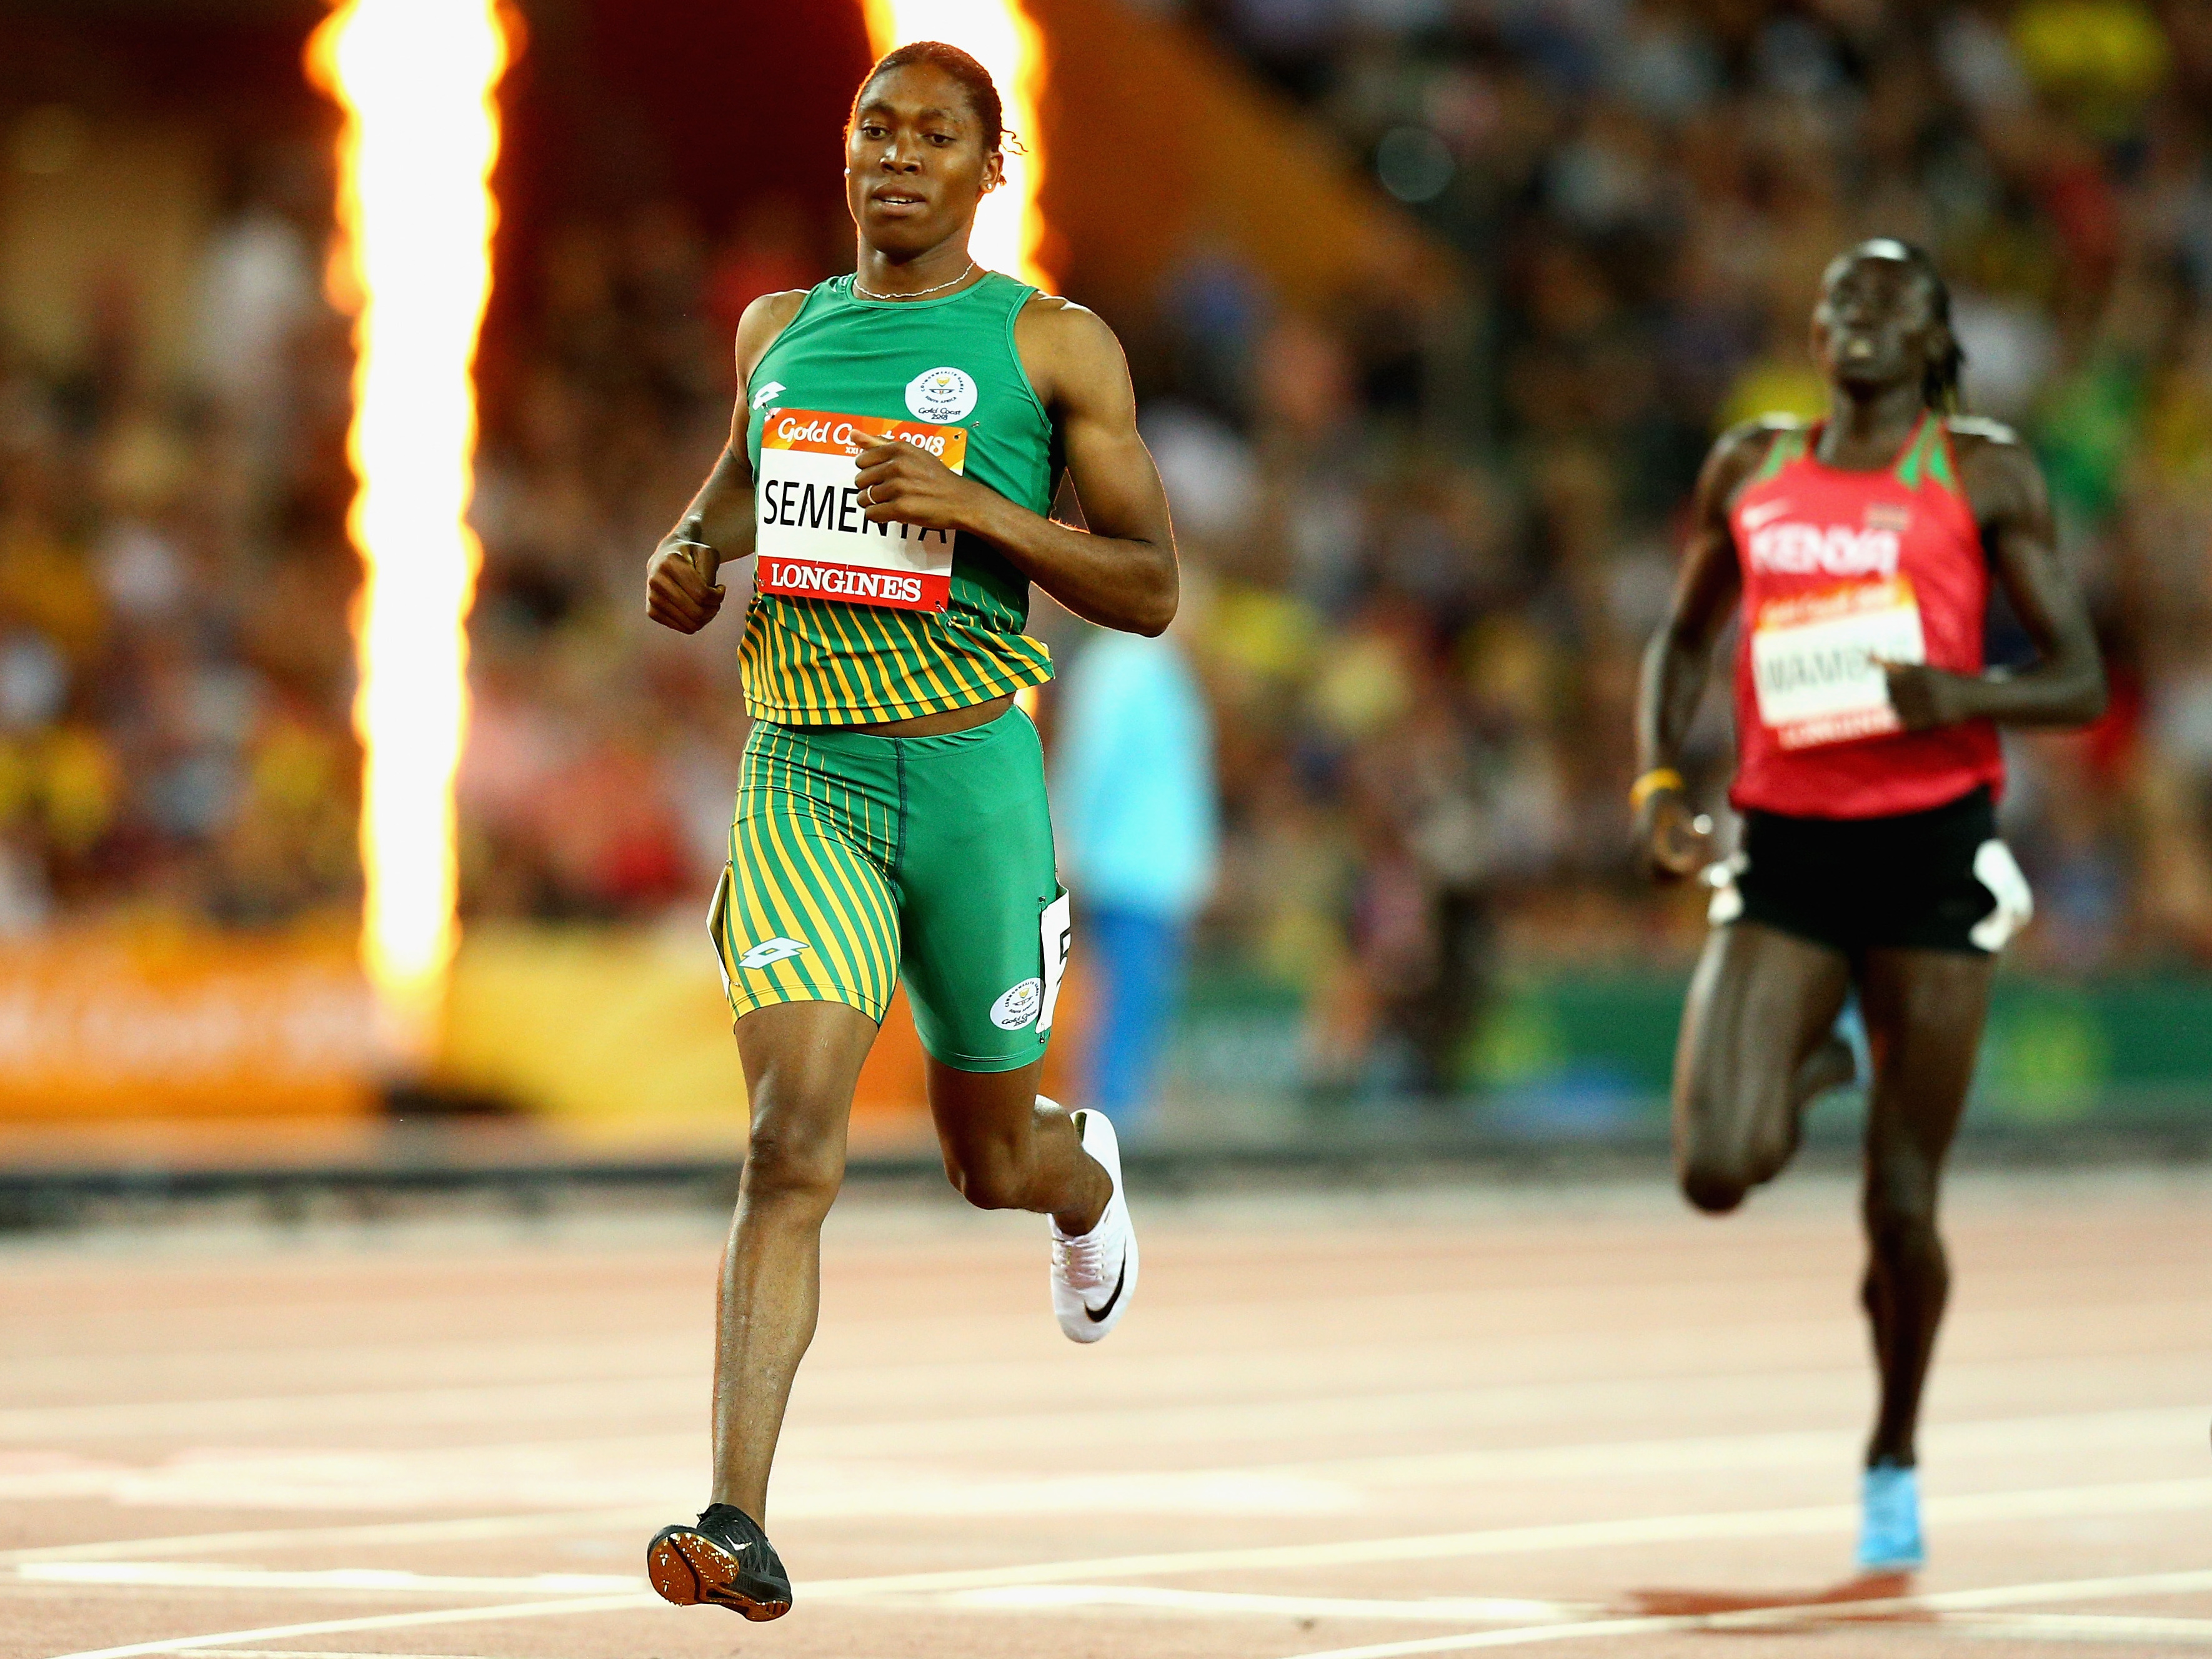 New IAAF rules 'an attack on Caster'